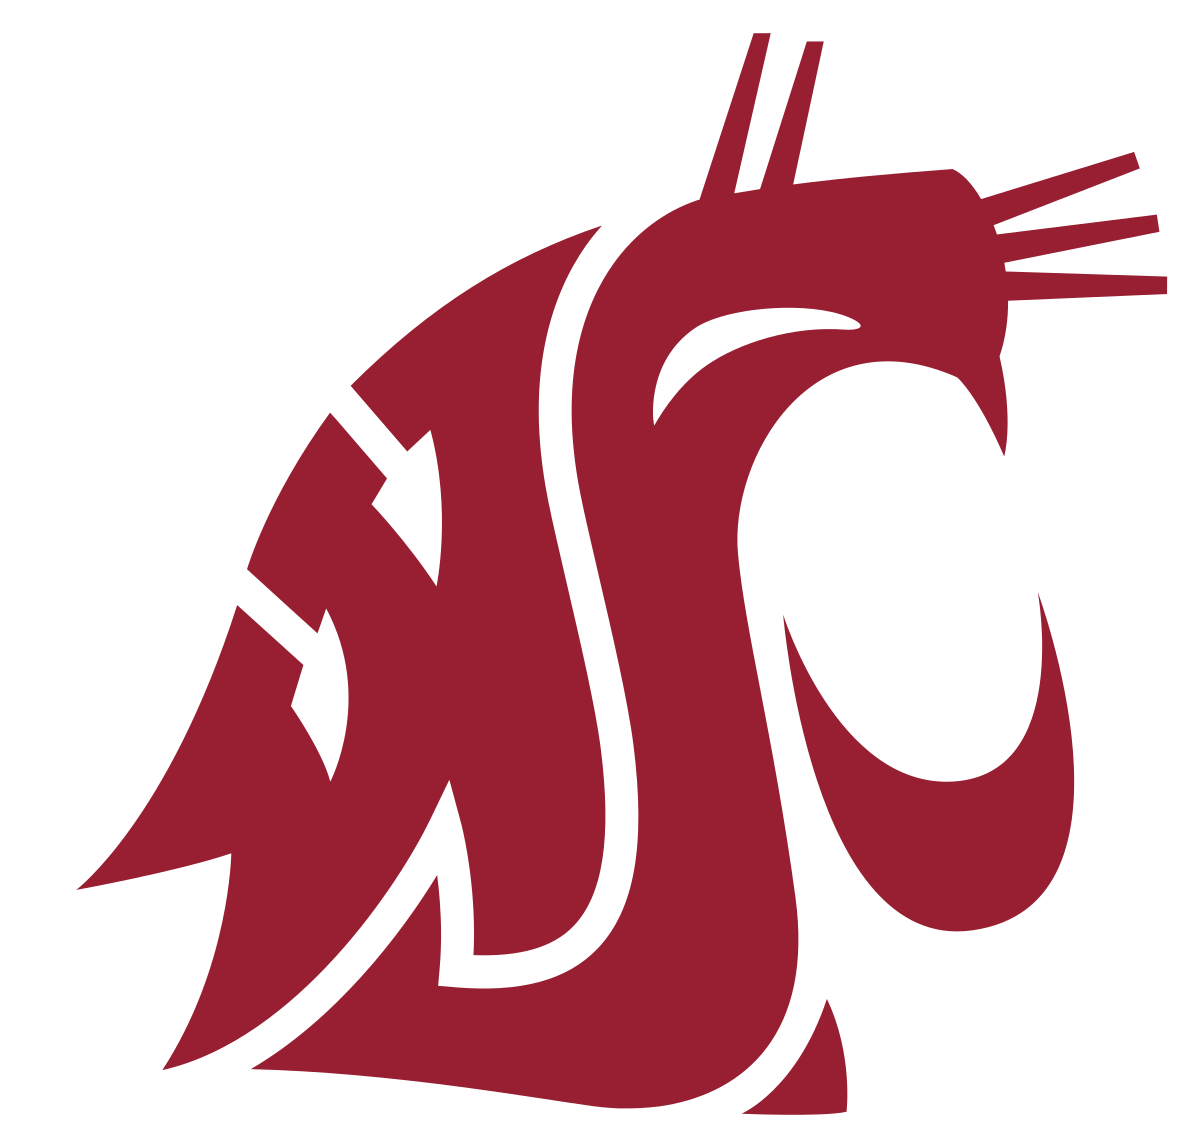 collection of washington. Wildcat clipart welch